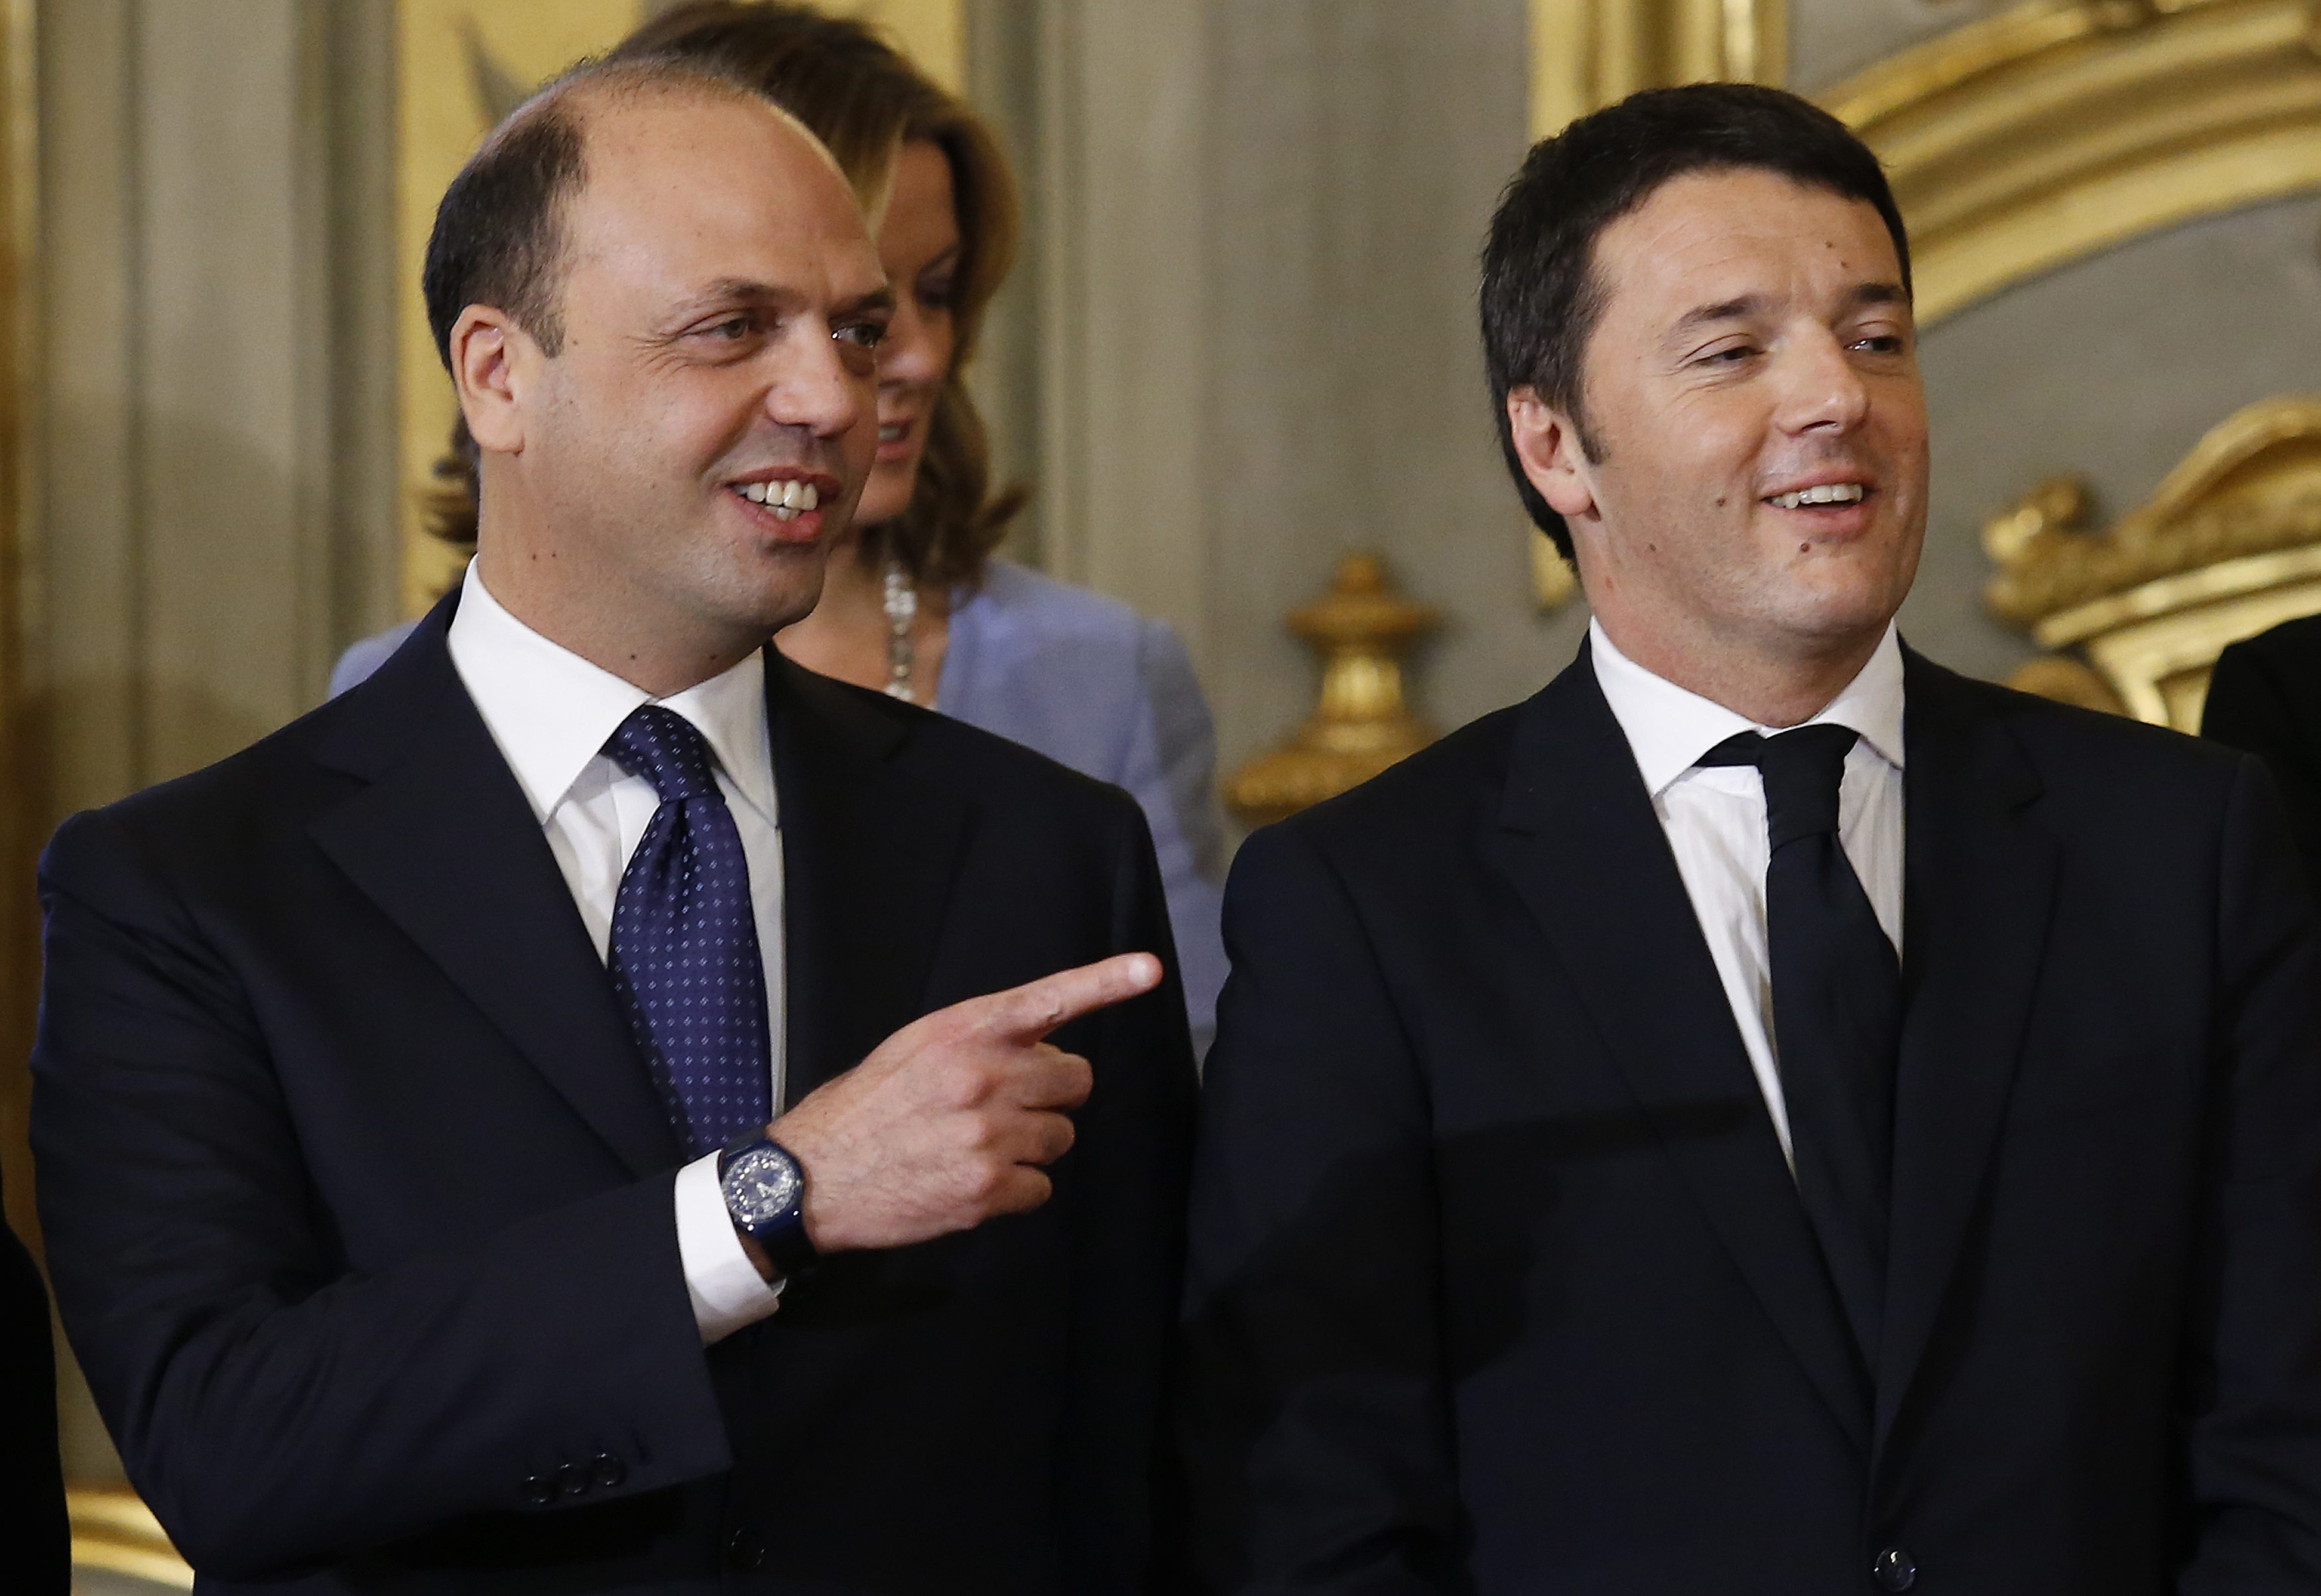 Newly appointed Italian Prime Minister Matteo Renzi (R) and Interior Minister Angelino Alfano talk during a swearing-in ceremony at Quirinale Palace in Rome February 22, 2014. Italian center-left leader Renzi promised on Friday to start work on reforms immediately, after he named a new cabinet and formally accepted the mandate to form an administration he said would stay in place until 2018. REUTERS/Remo Casilli  (ITALY - Tags: POLITICS)